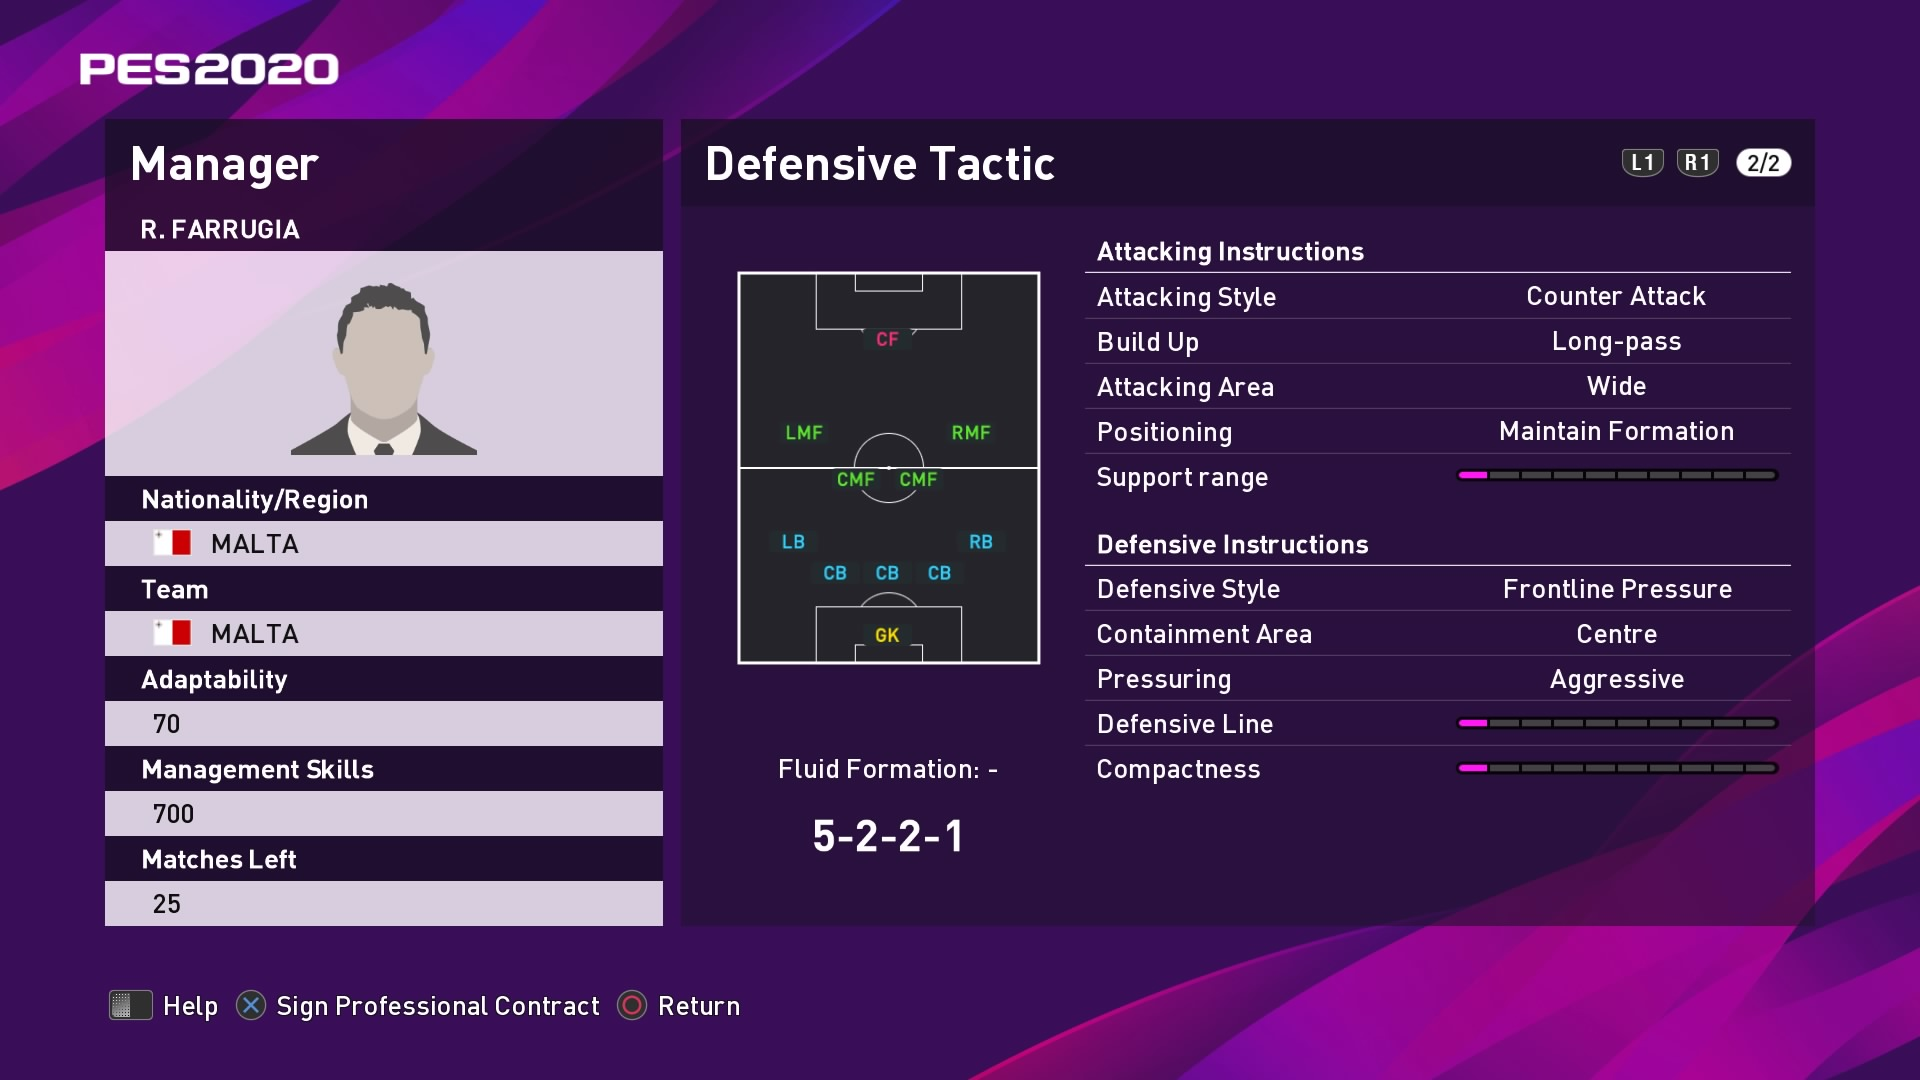 R. Farrugia (Ray Farrugia) Defensive Tactic in PES 2020 myClub